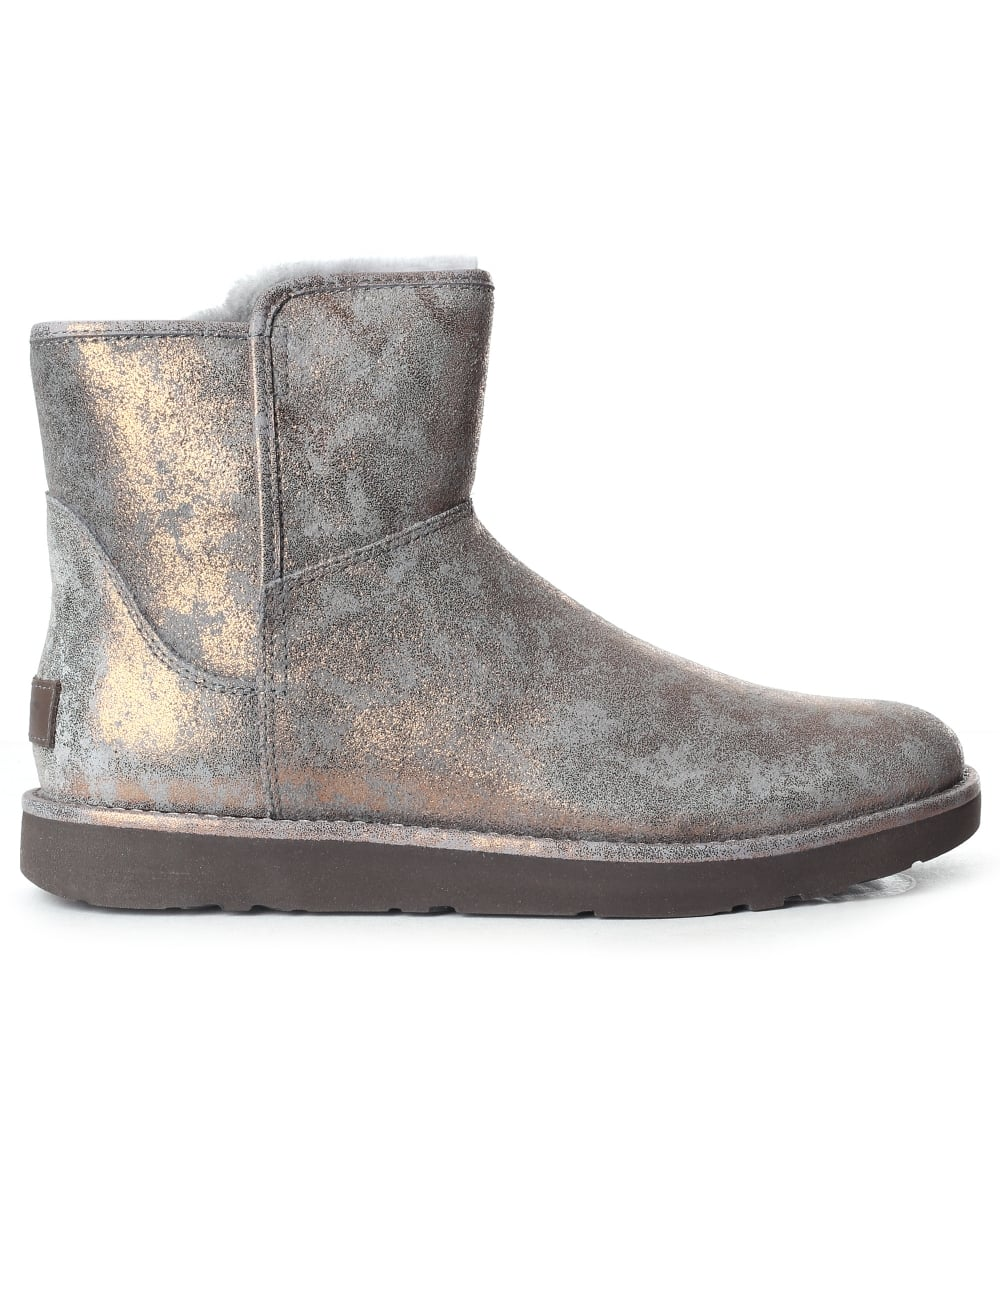 e8b51d4ed6e UGG Abree Women's Mini Stardust Boot